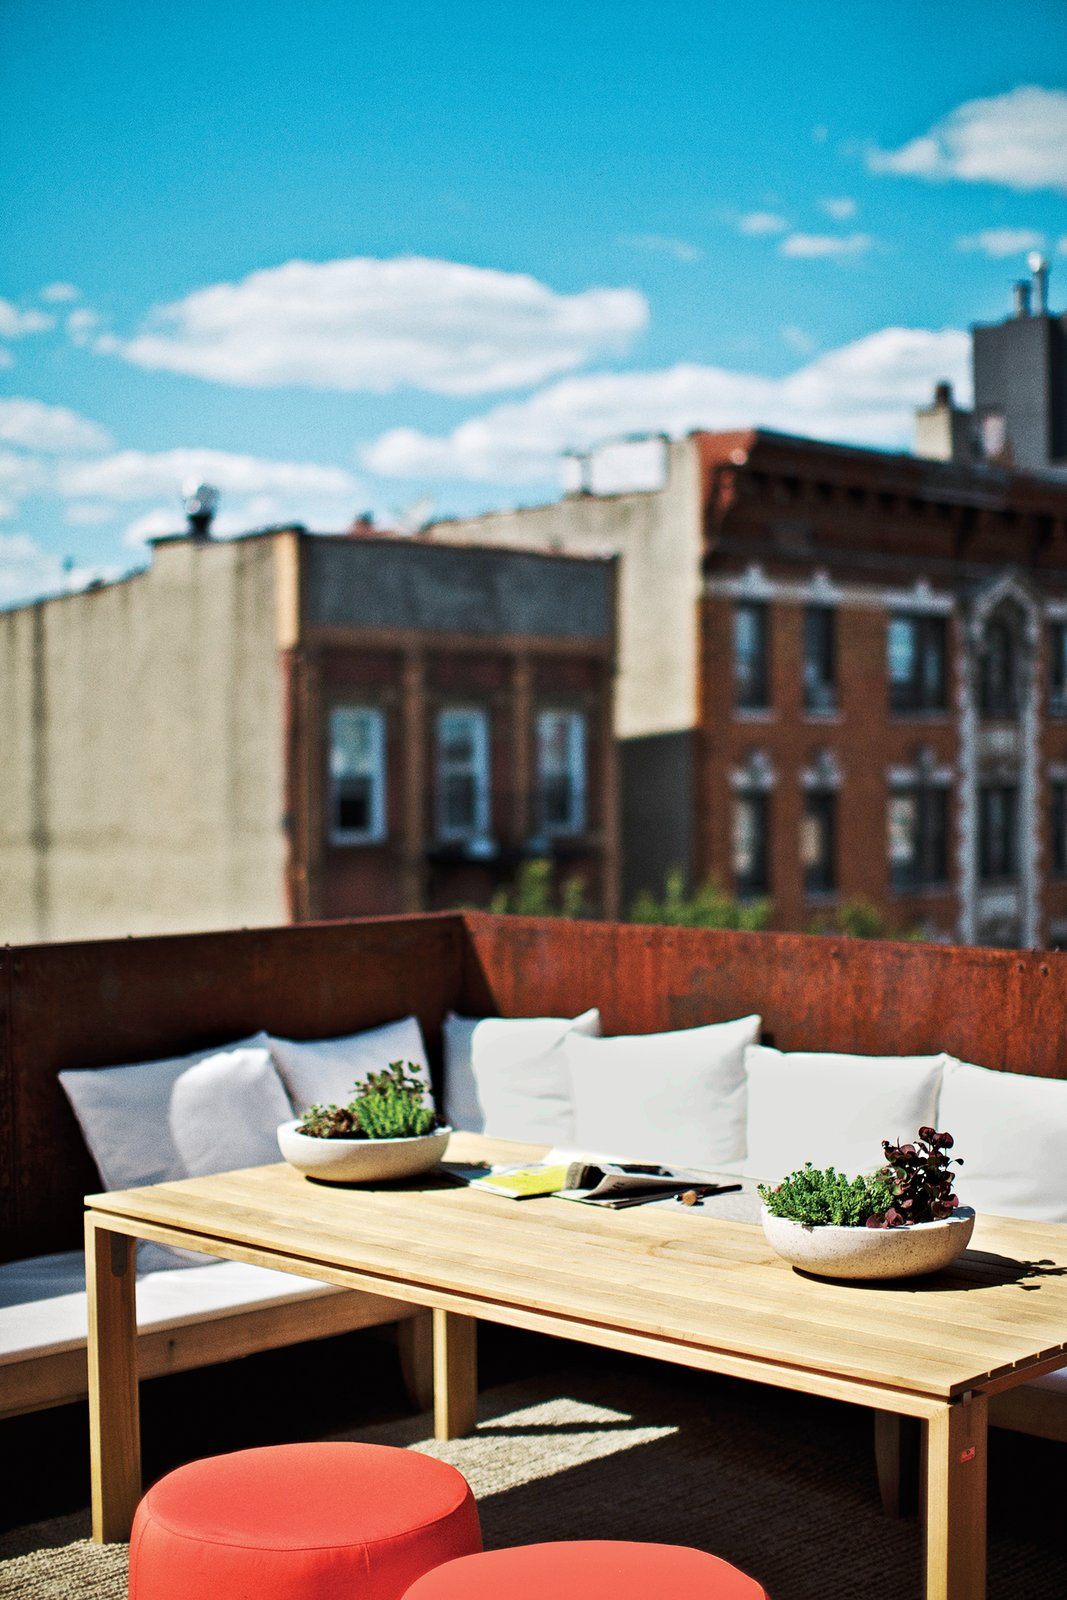 #outdoor #rooftop #table #dining #Summer #chair #Brooklyn #tabletop  Photo by Paul Barbera   Outdoor